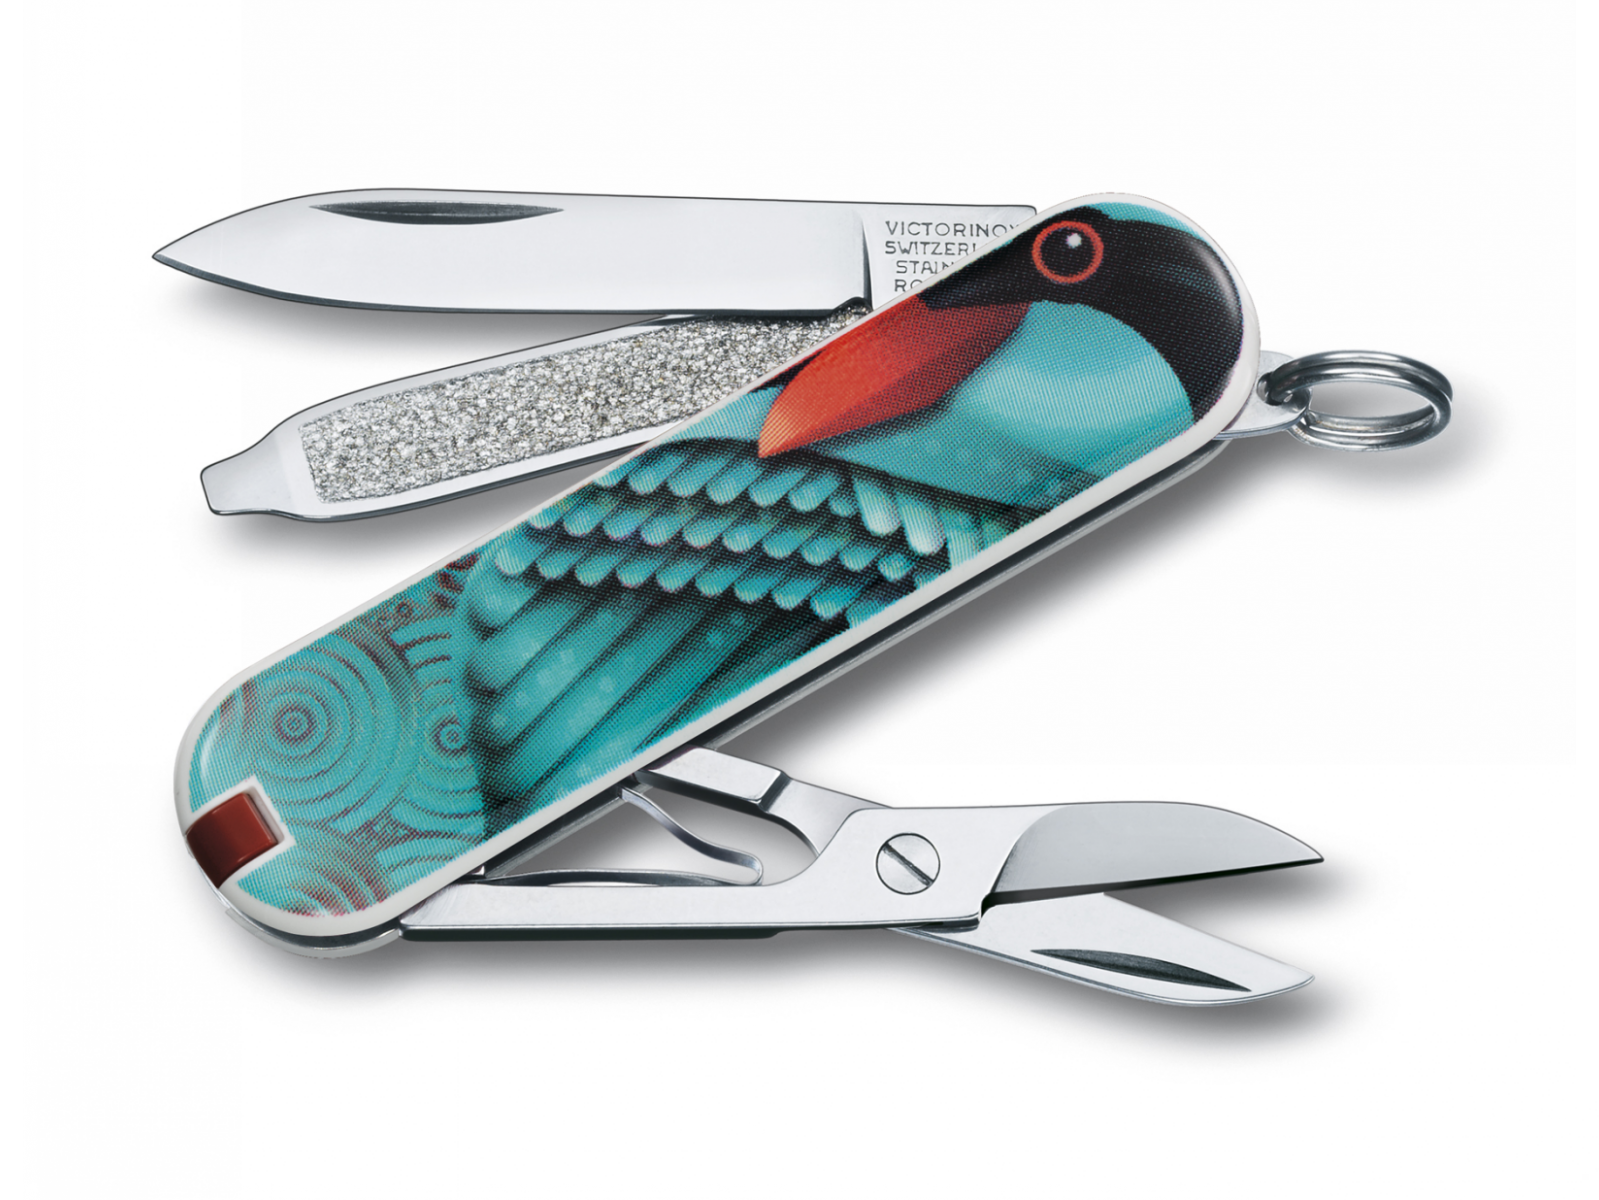 """Classic """"Spread Your Wings"""", limited edition Victorinox (0.6223.L1208)"""